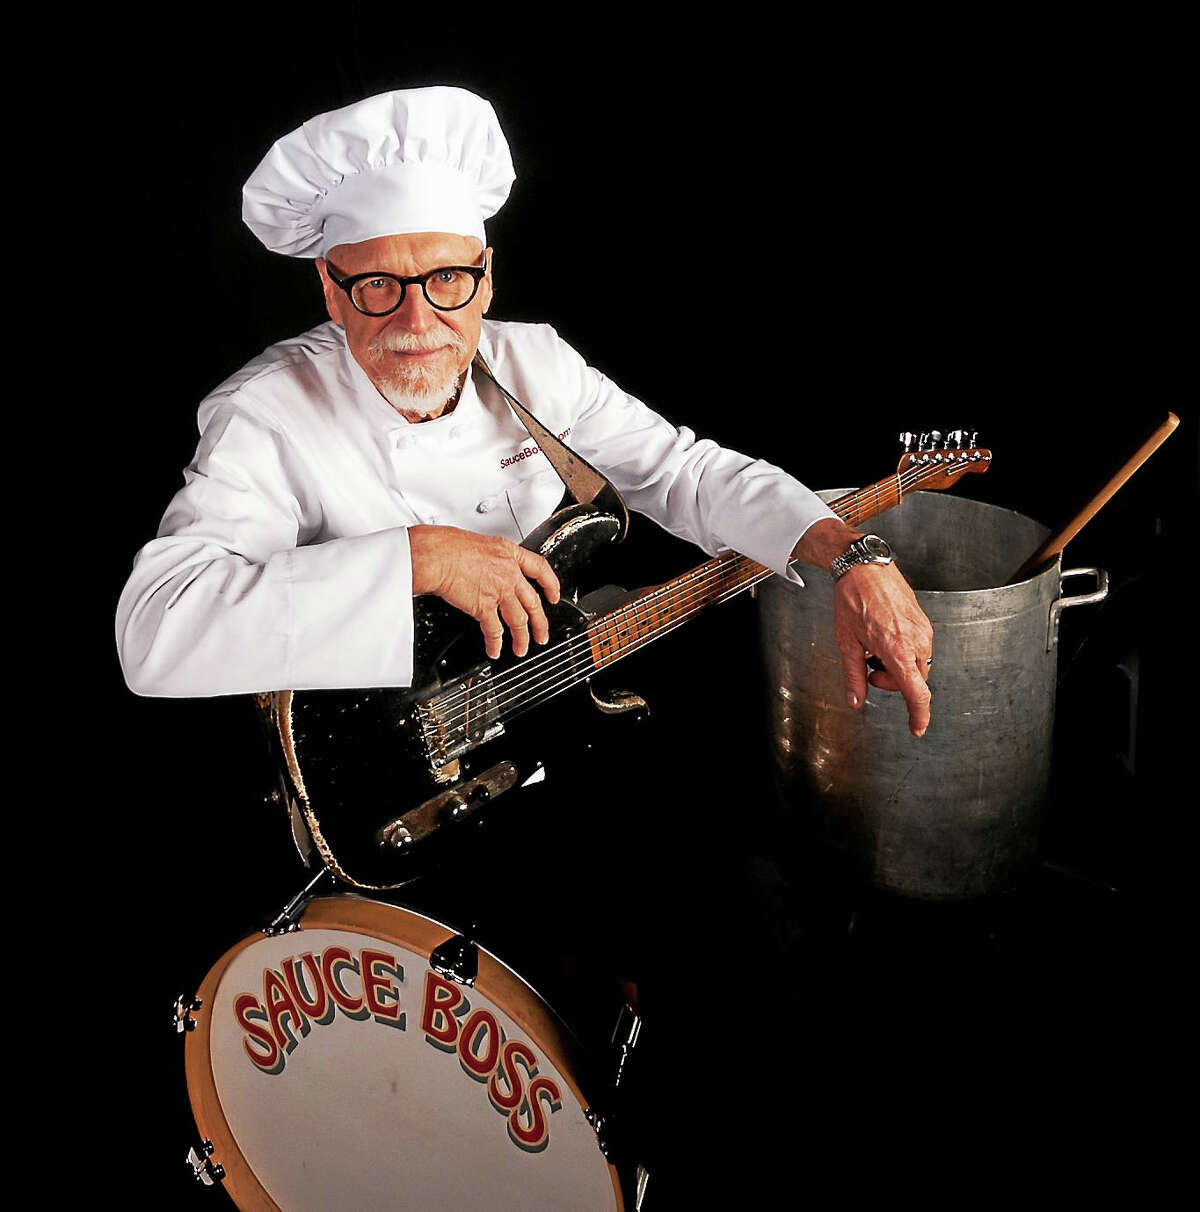 Photo by Eric IlasenkoThe Sauce Boss and his Gumbo will be at Black-Eyed Sally's Friday, Dec. 4.